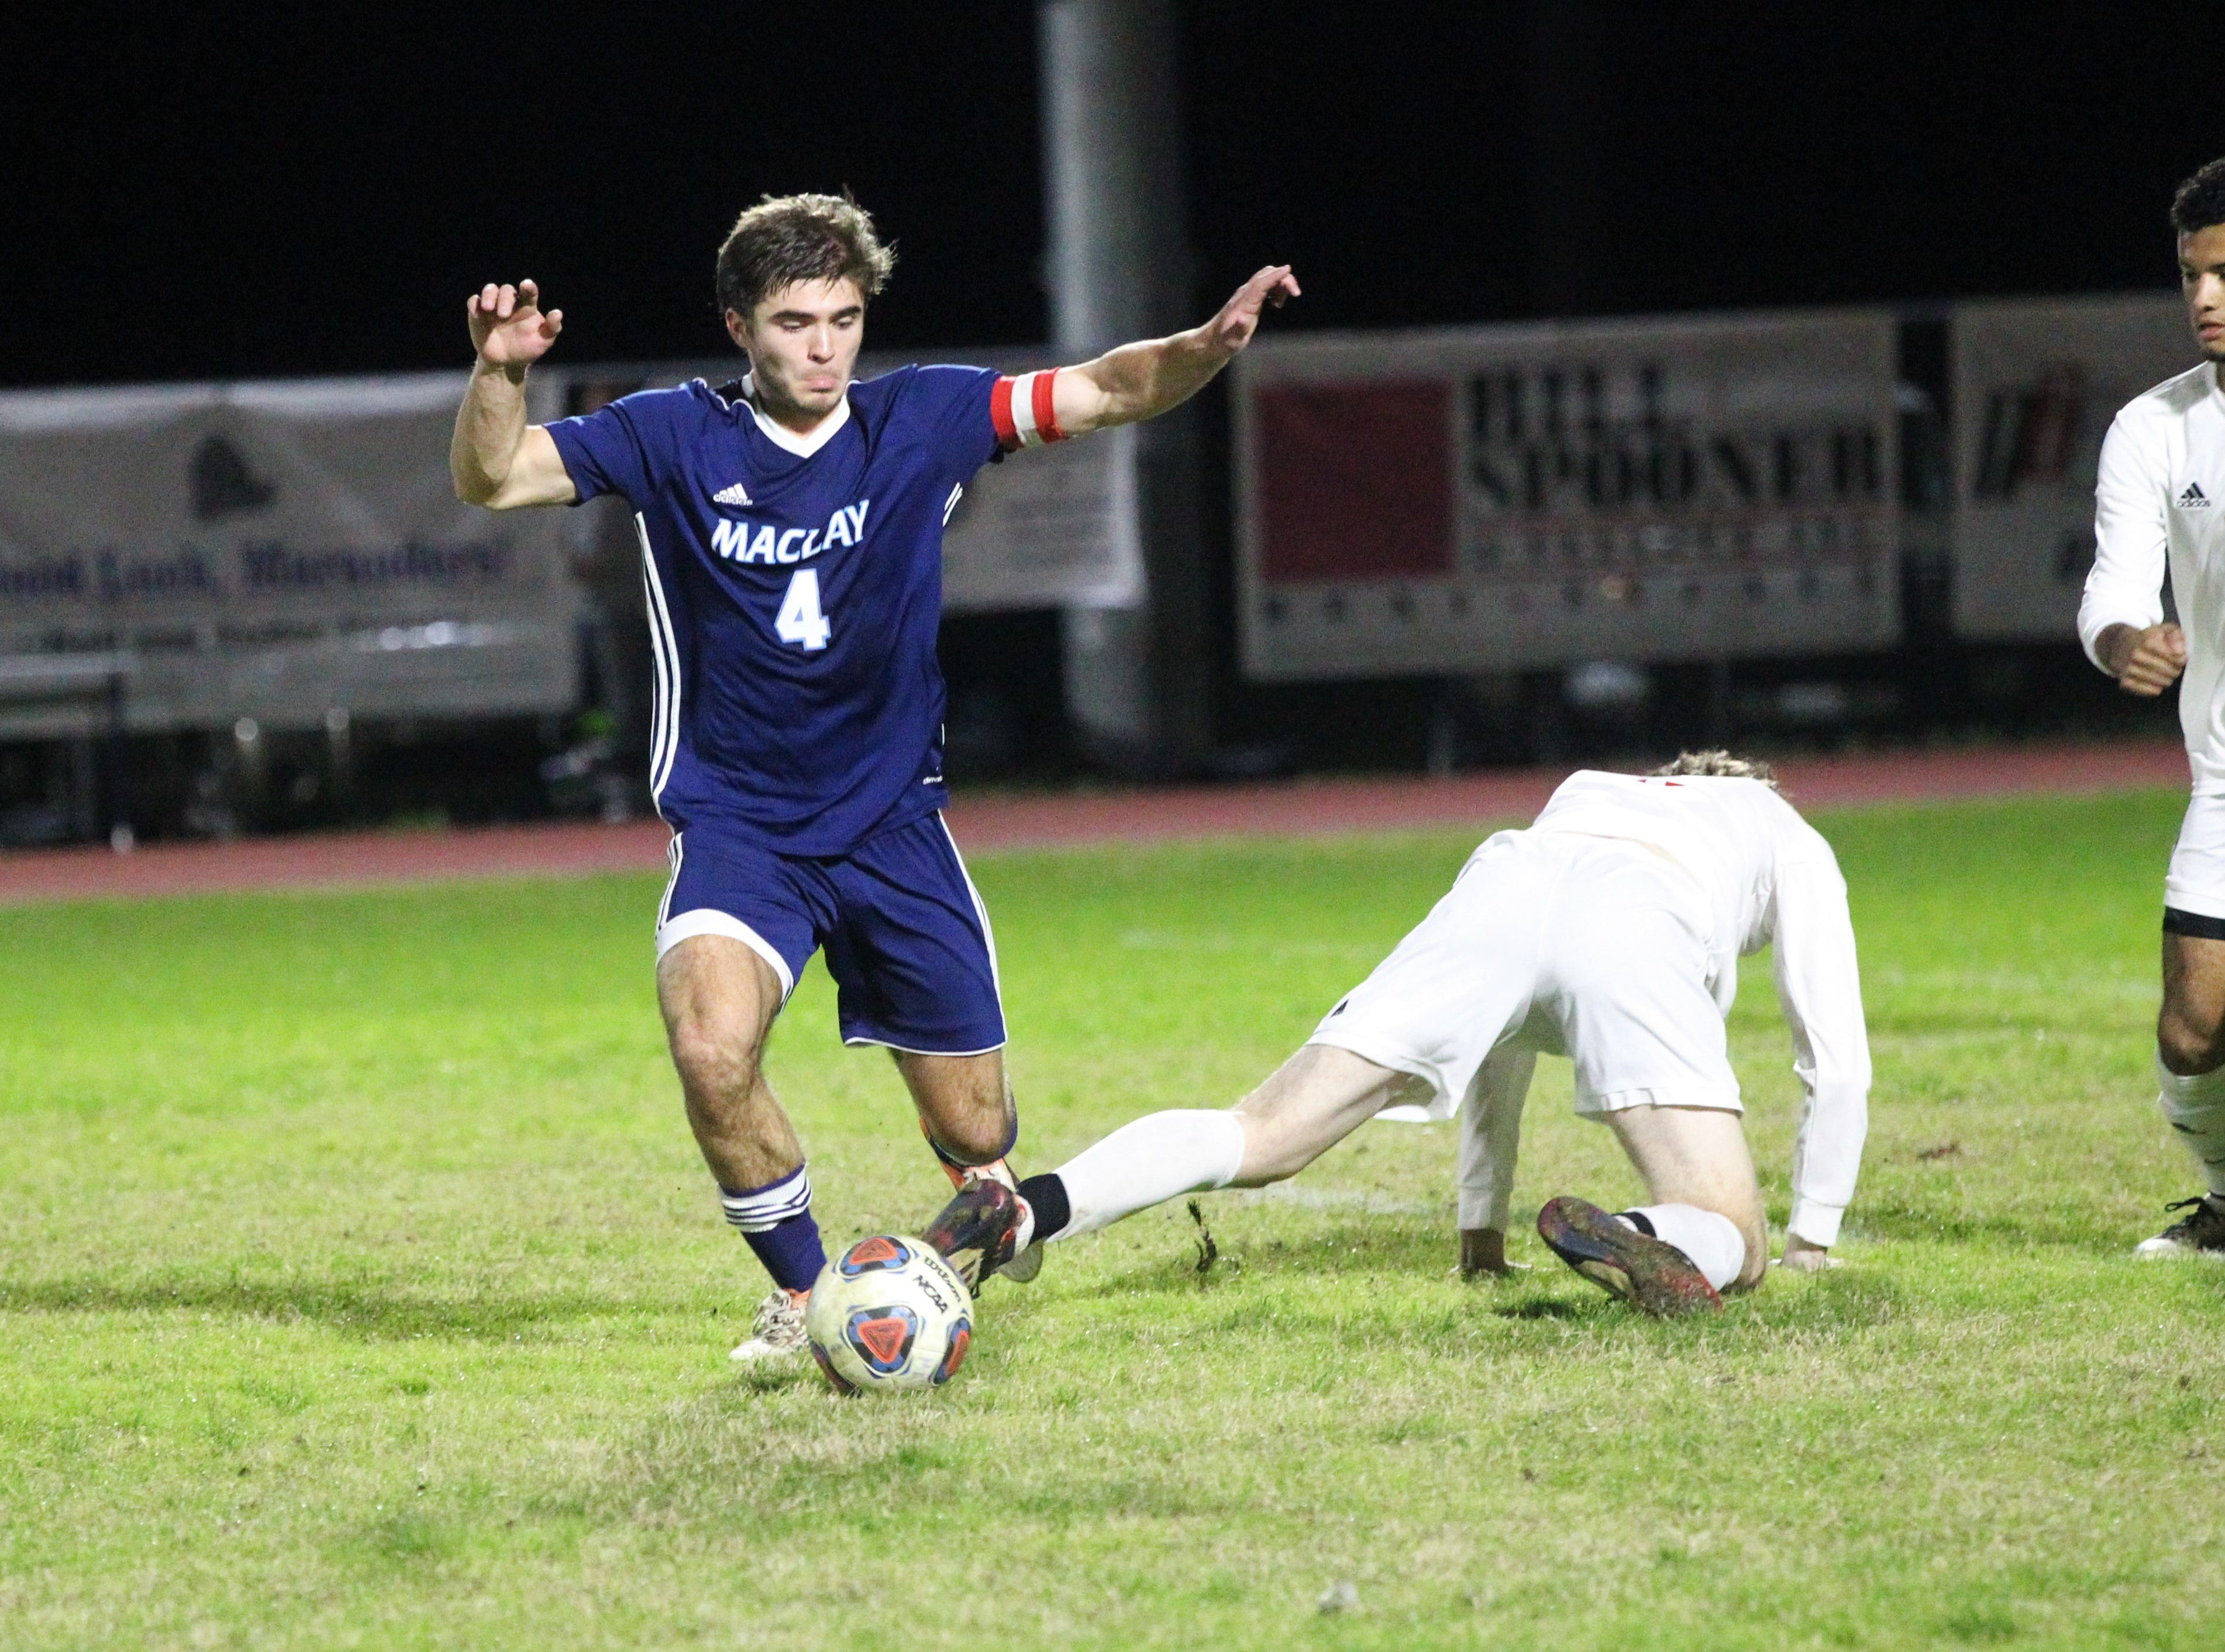 Maclay's Jordan Pichard has a ball poked away by Leon's Nick Ramsden and gets tripped as Leon's boys soccer team beat Maclay 3-1 on Jan. 22, 2019.